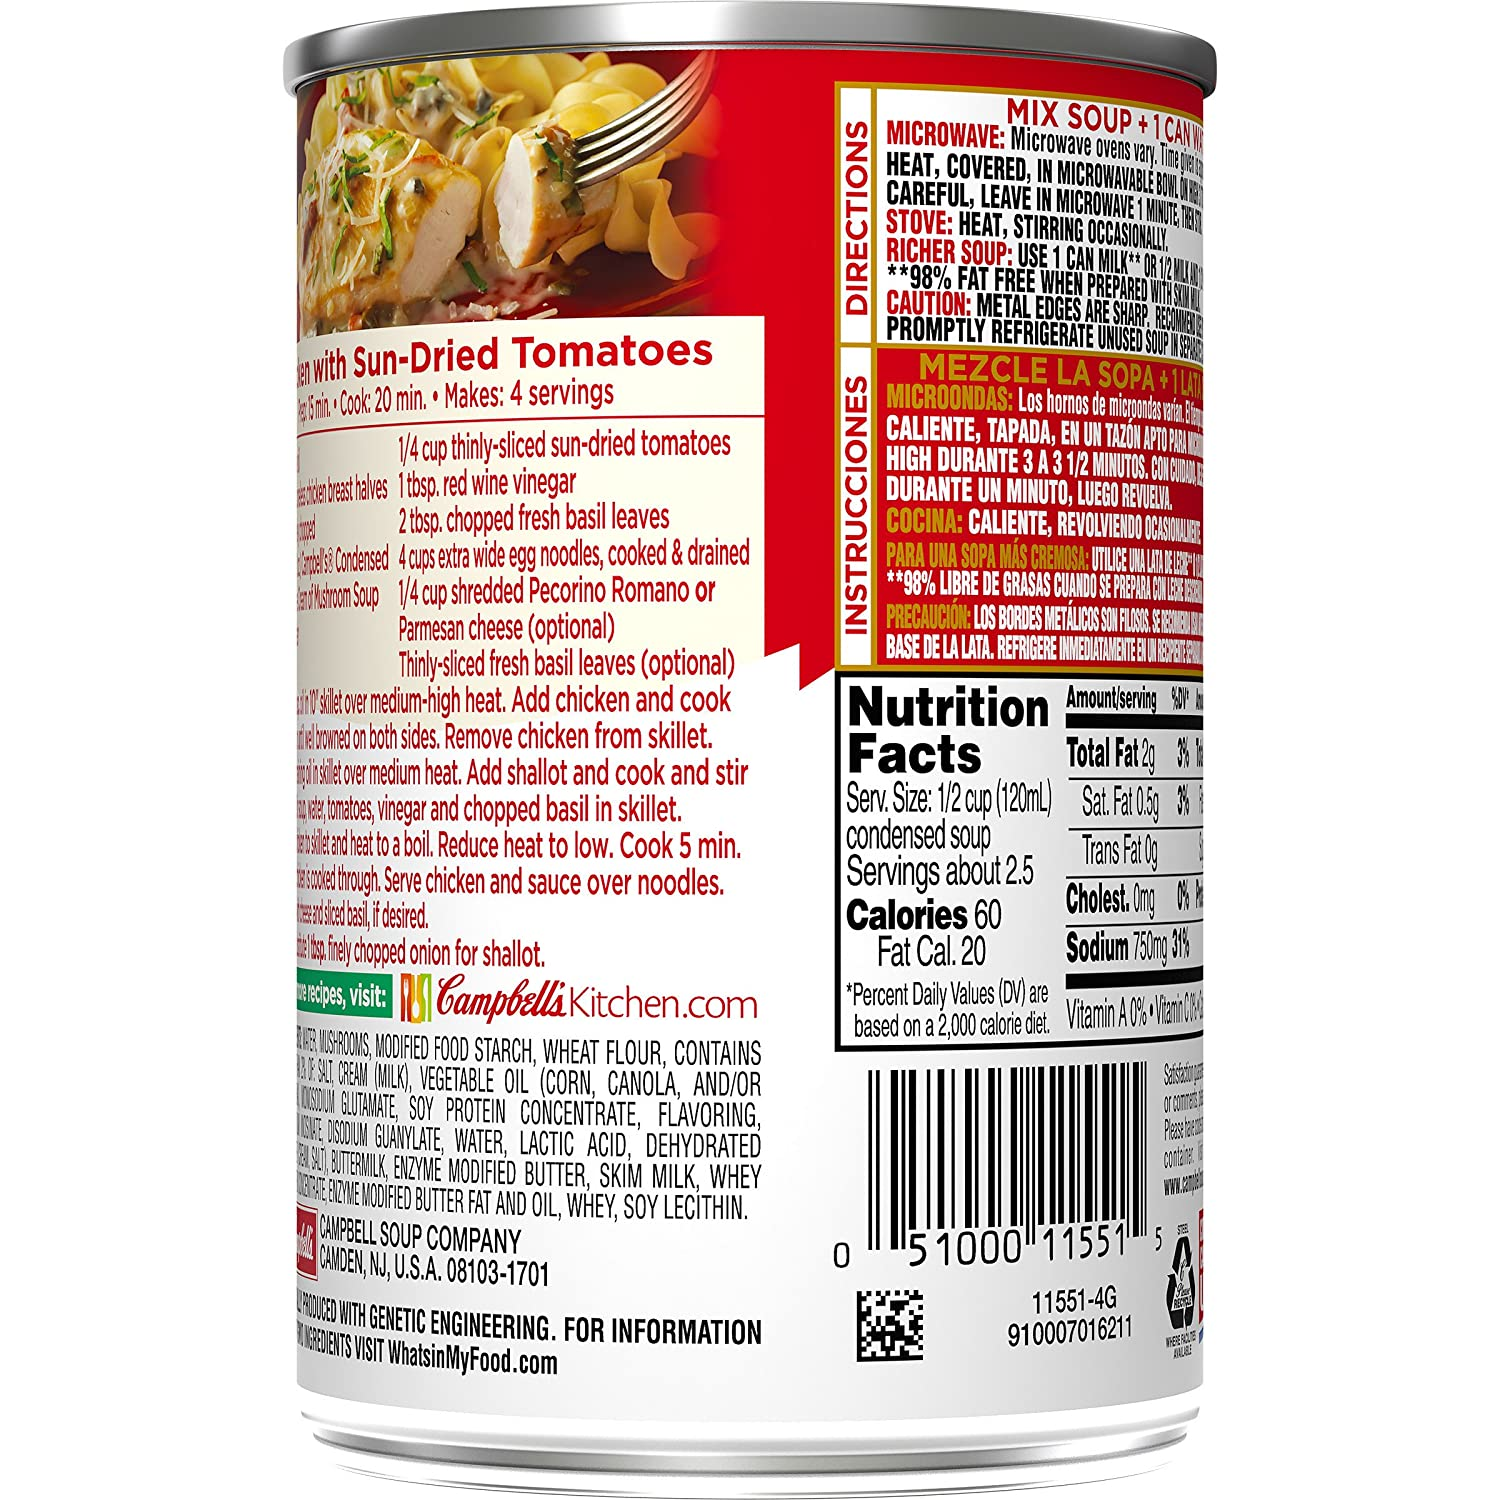 Campbells Condensed 98% Fat Free Cream of Mushroom Soup, 10.5 oz. Can